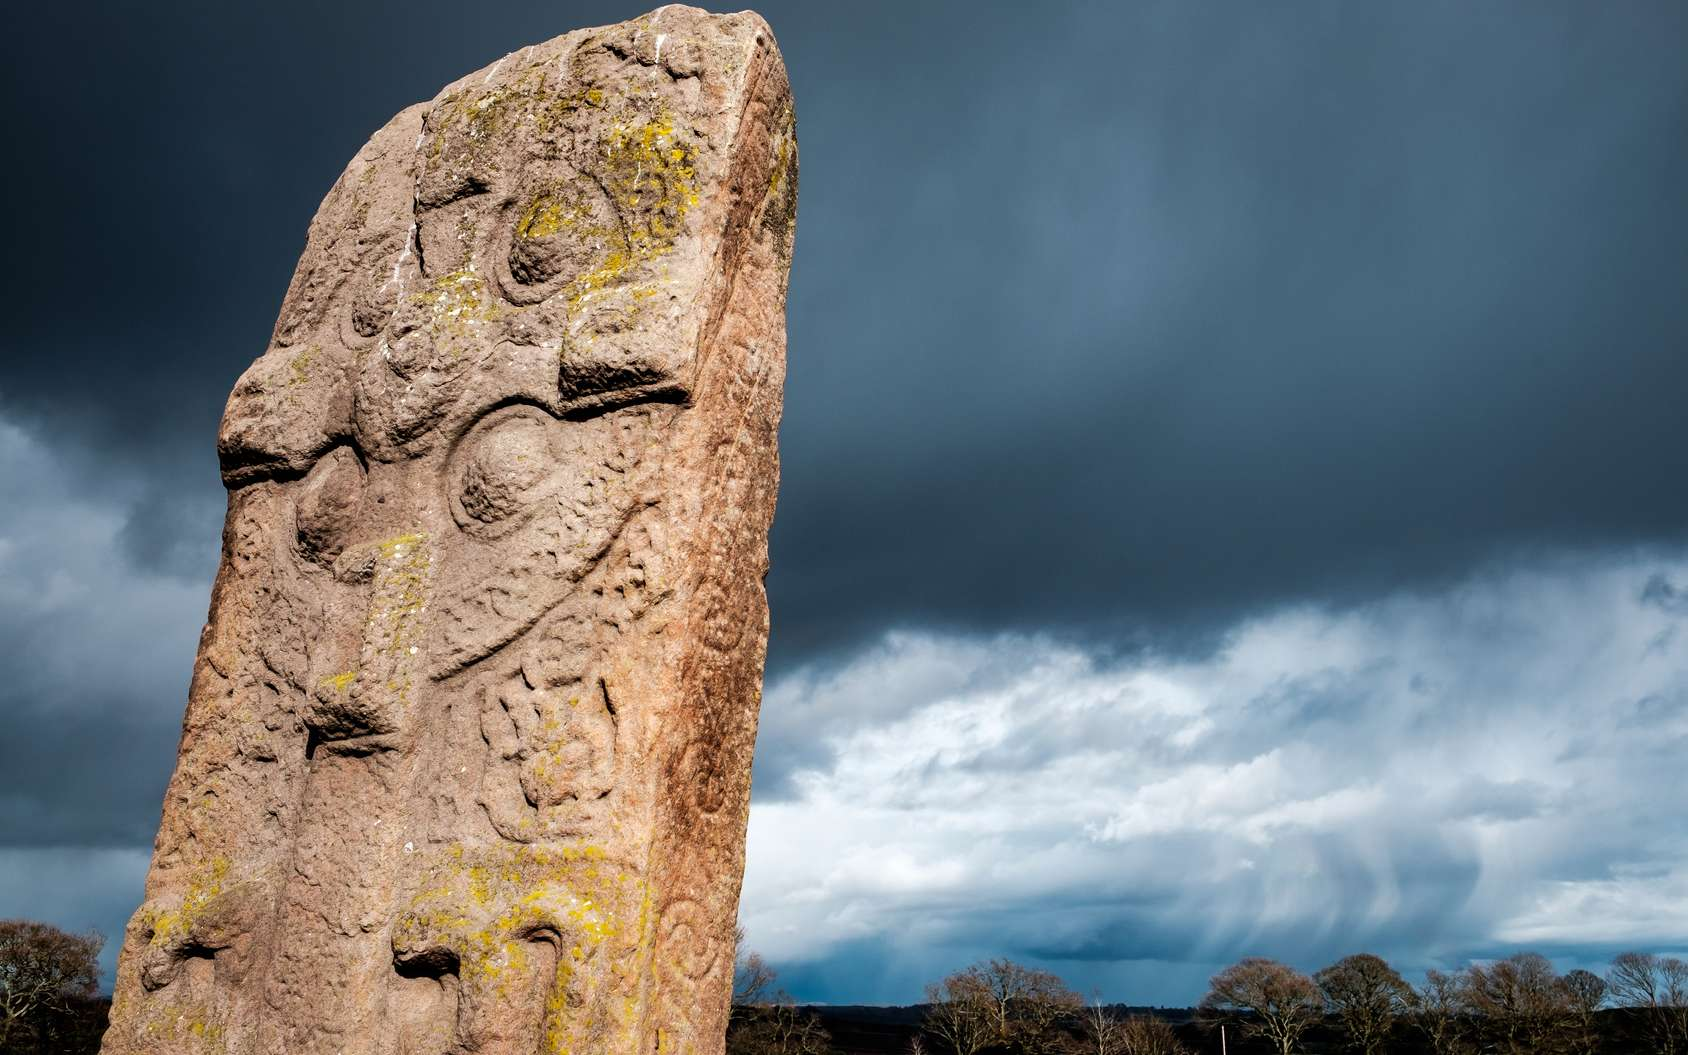 What is the difference between the Gauls and the Celts?